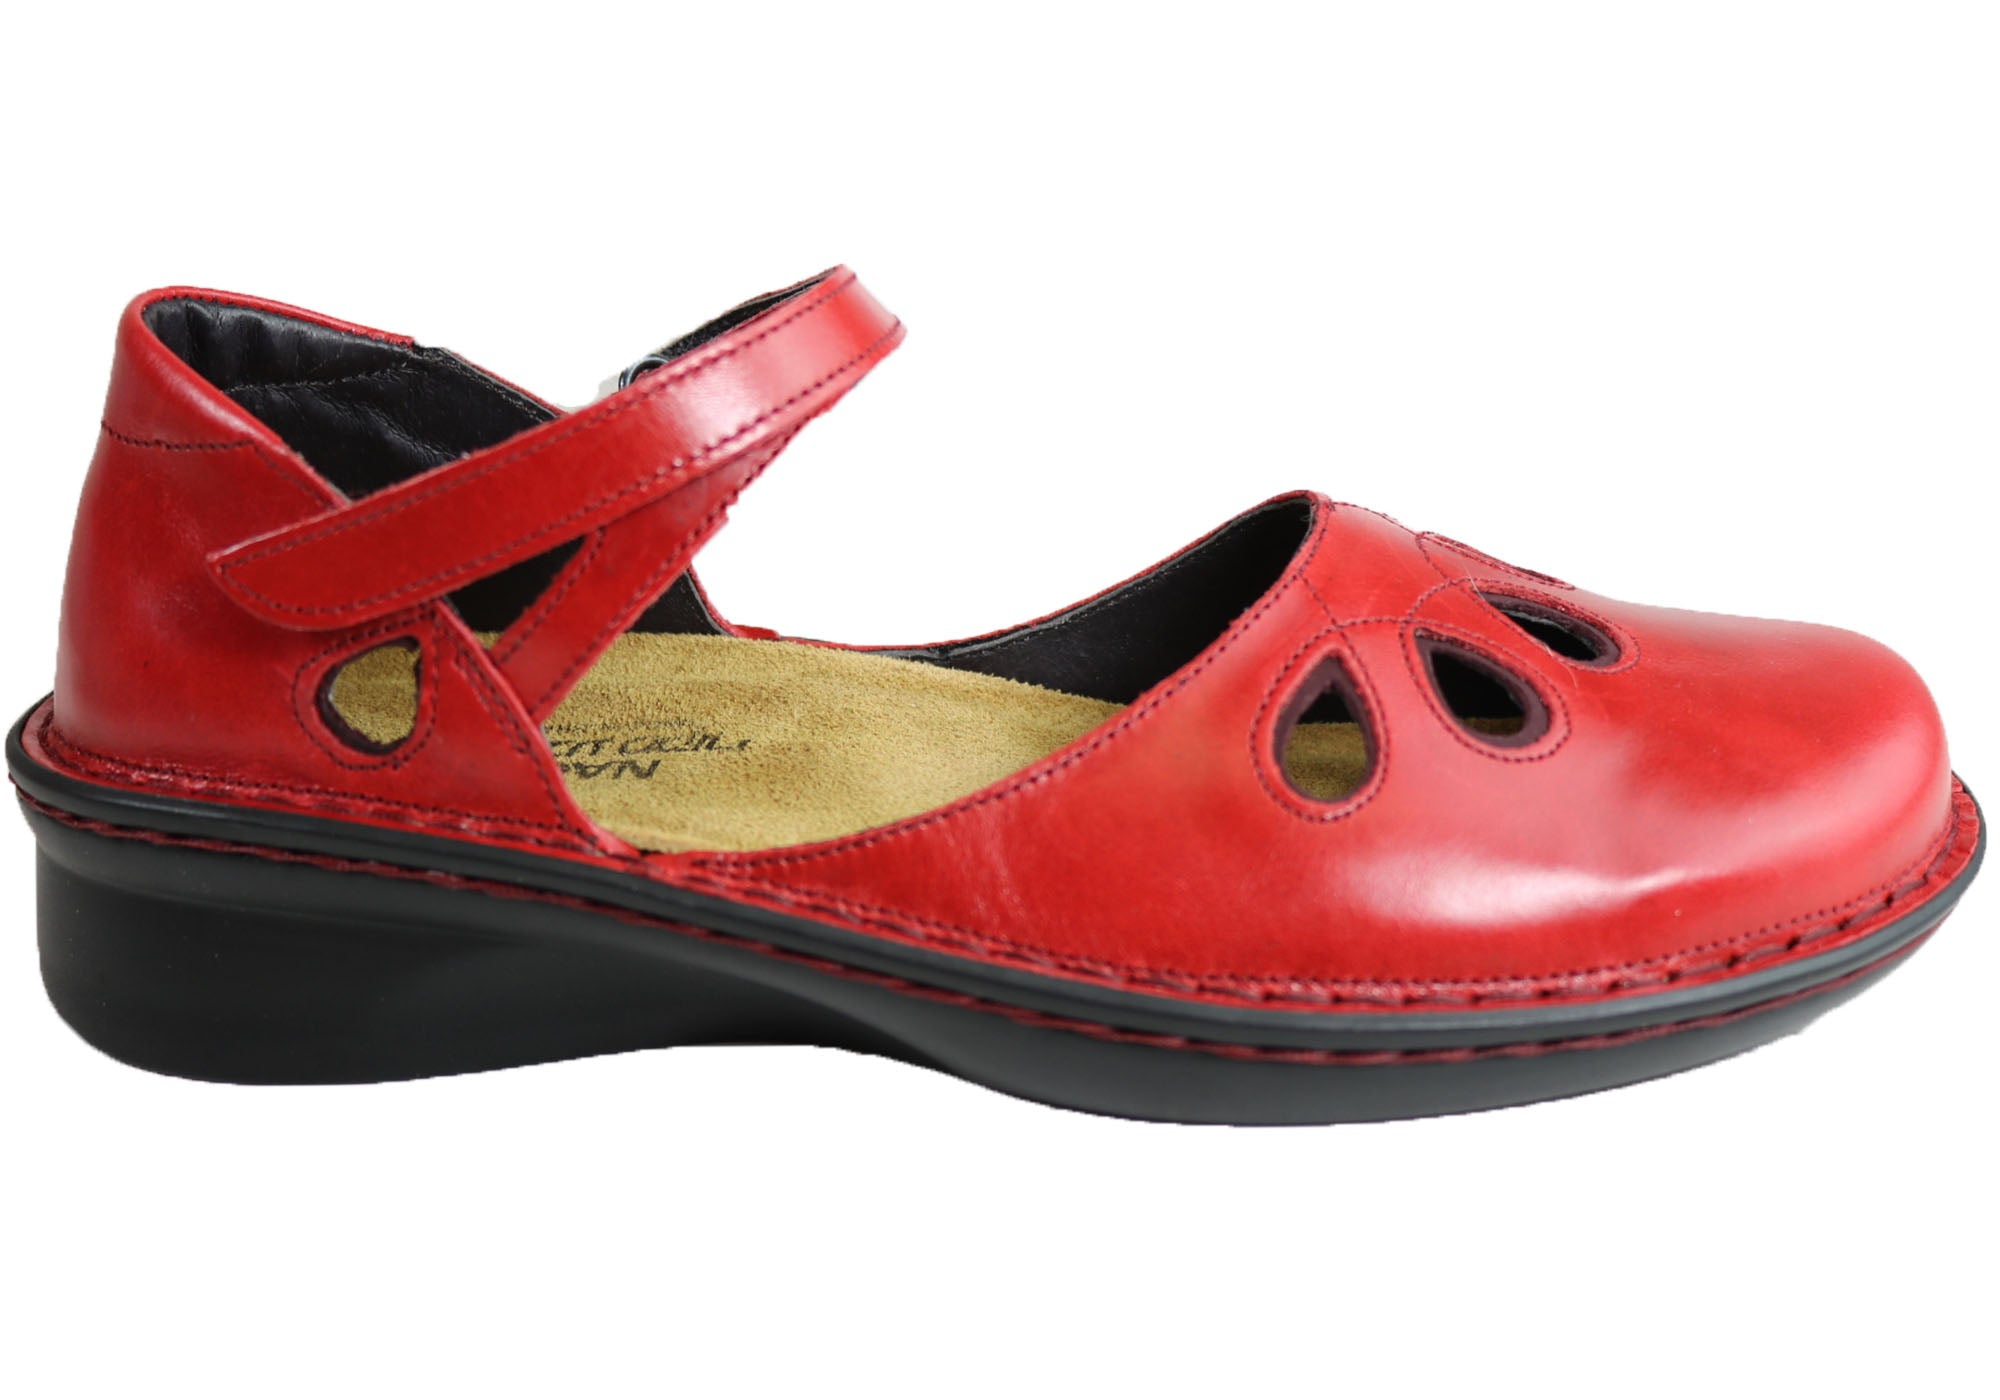 c78e000ee720 Details about NEW NAOT MOTIFF WOMENS COMFORT CUSHIONED ORTHOTIC FRIENDLY  MARY JANE SHOES